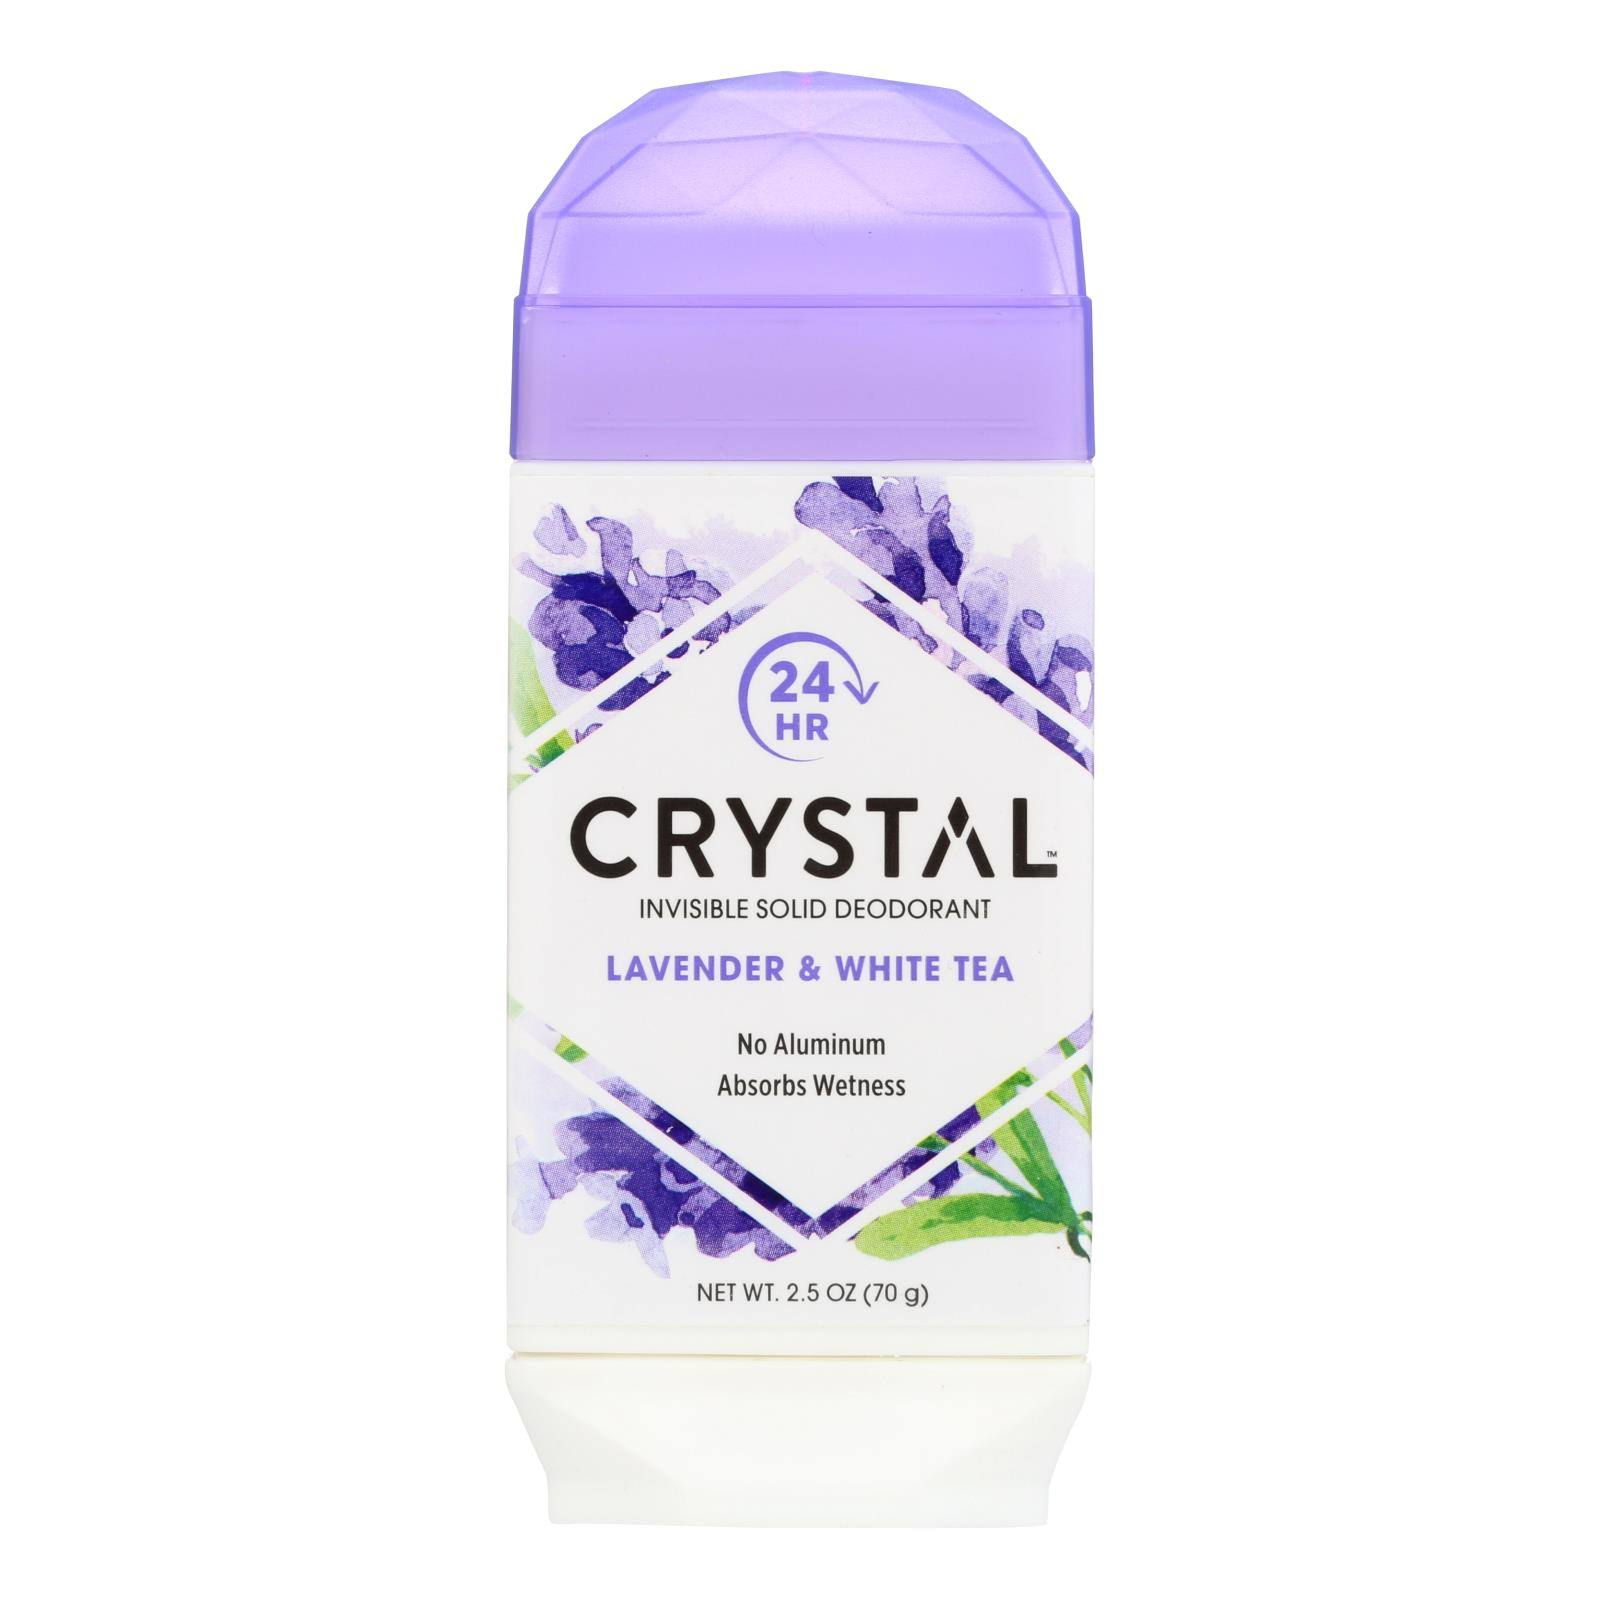 Crystal Body Deodorant Natural Deodorant - Lavender and White Tea, 2.5oz